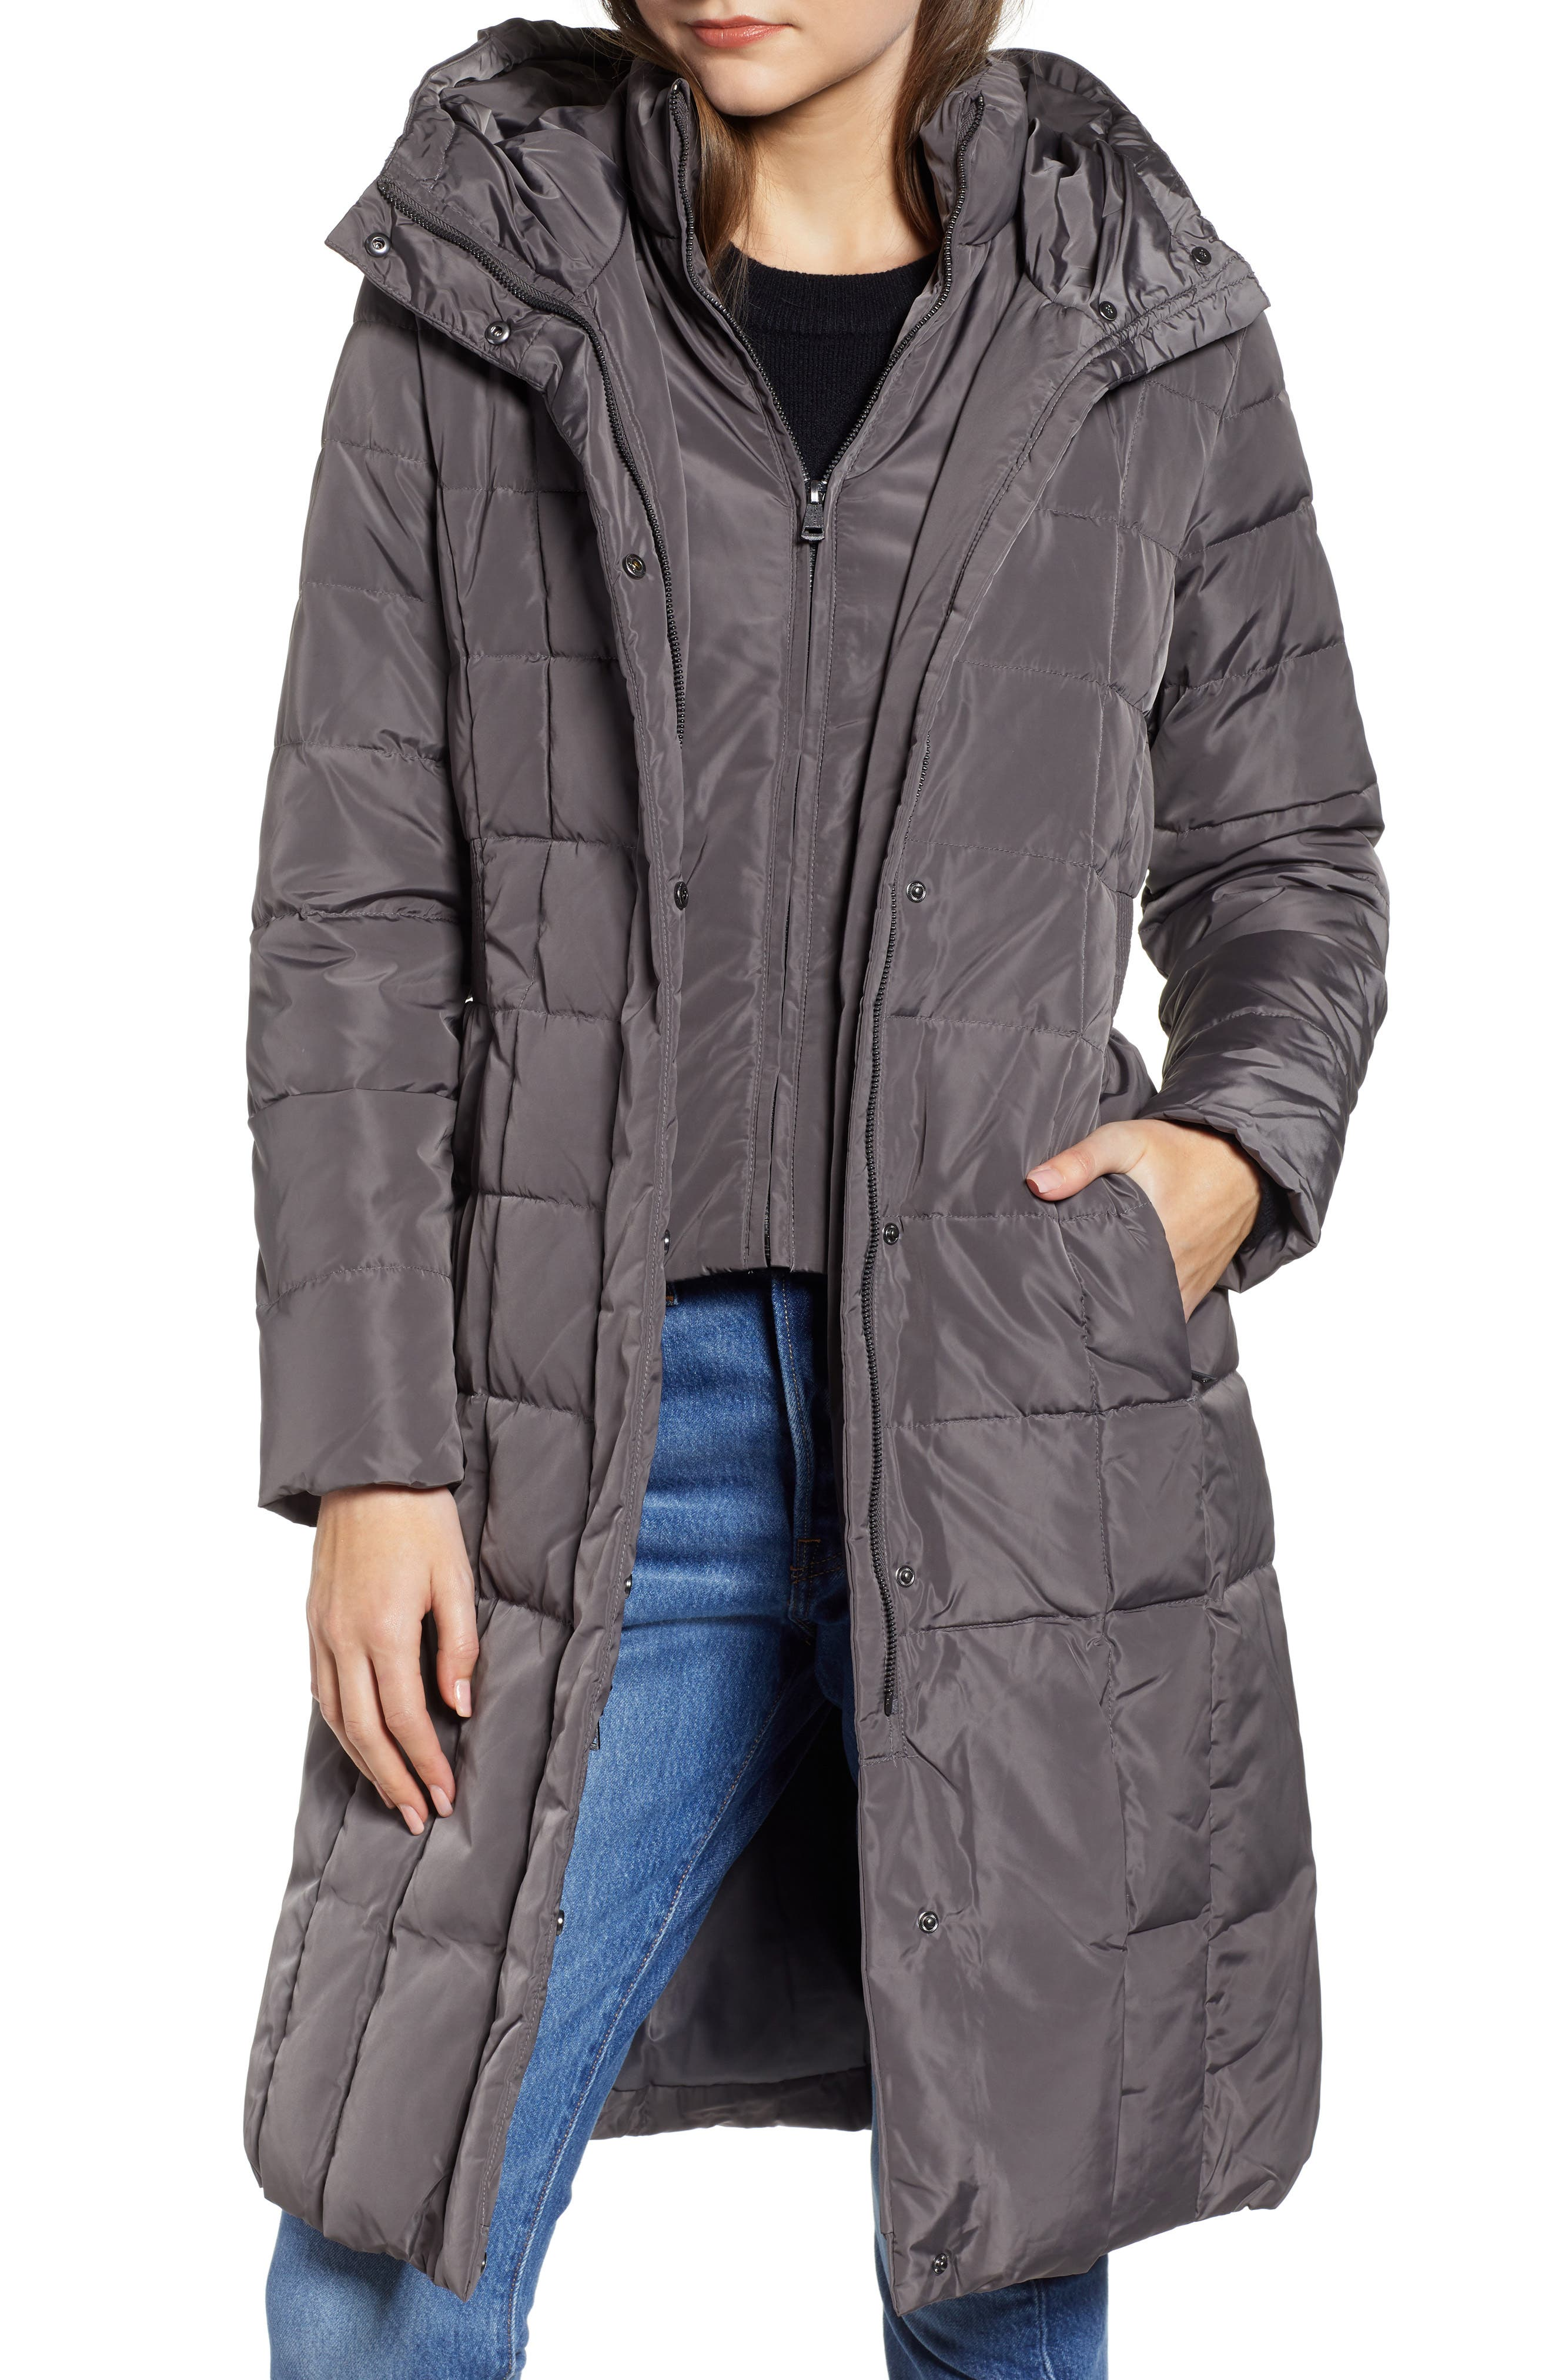 COLE HAAN SIGNATURE, Cole Haan Bib Insert Down & Feather Fill Coat, Main thumbnail 1, color, 024